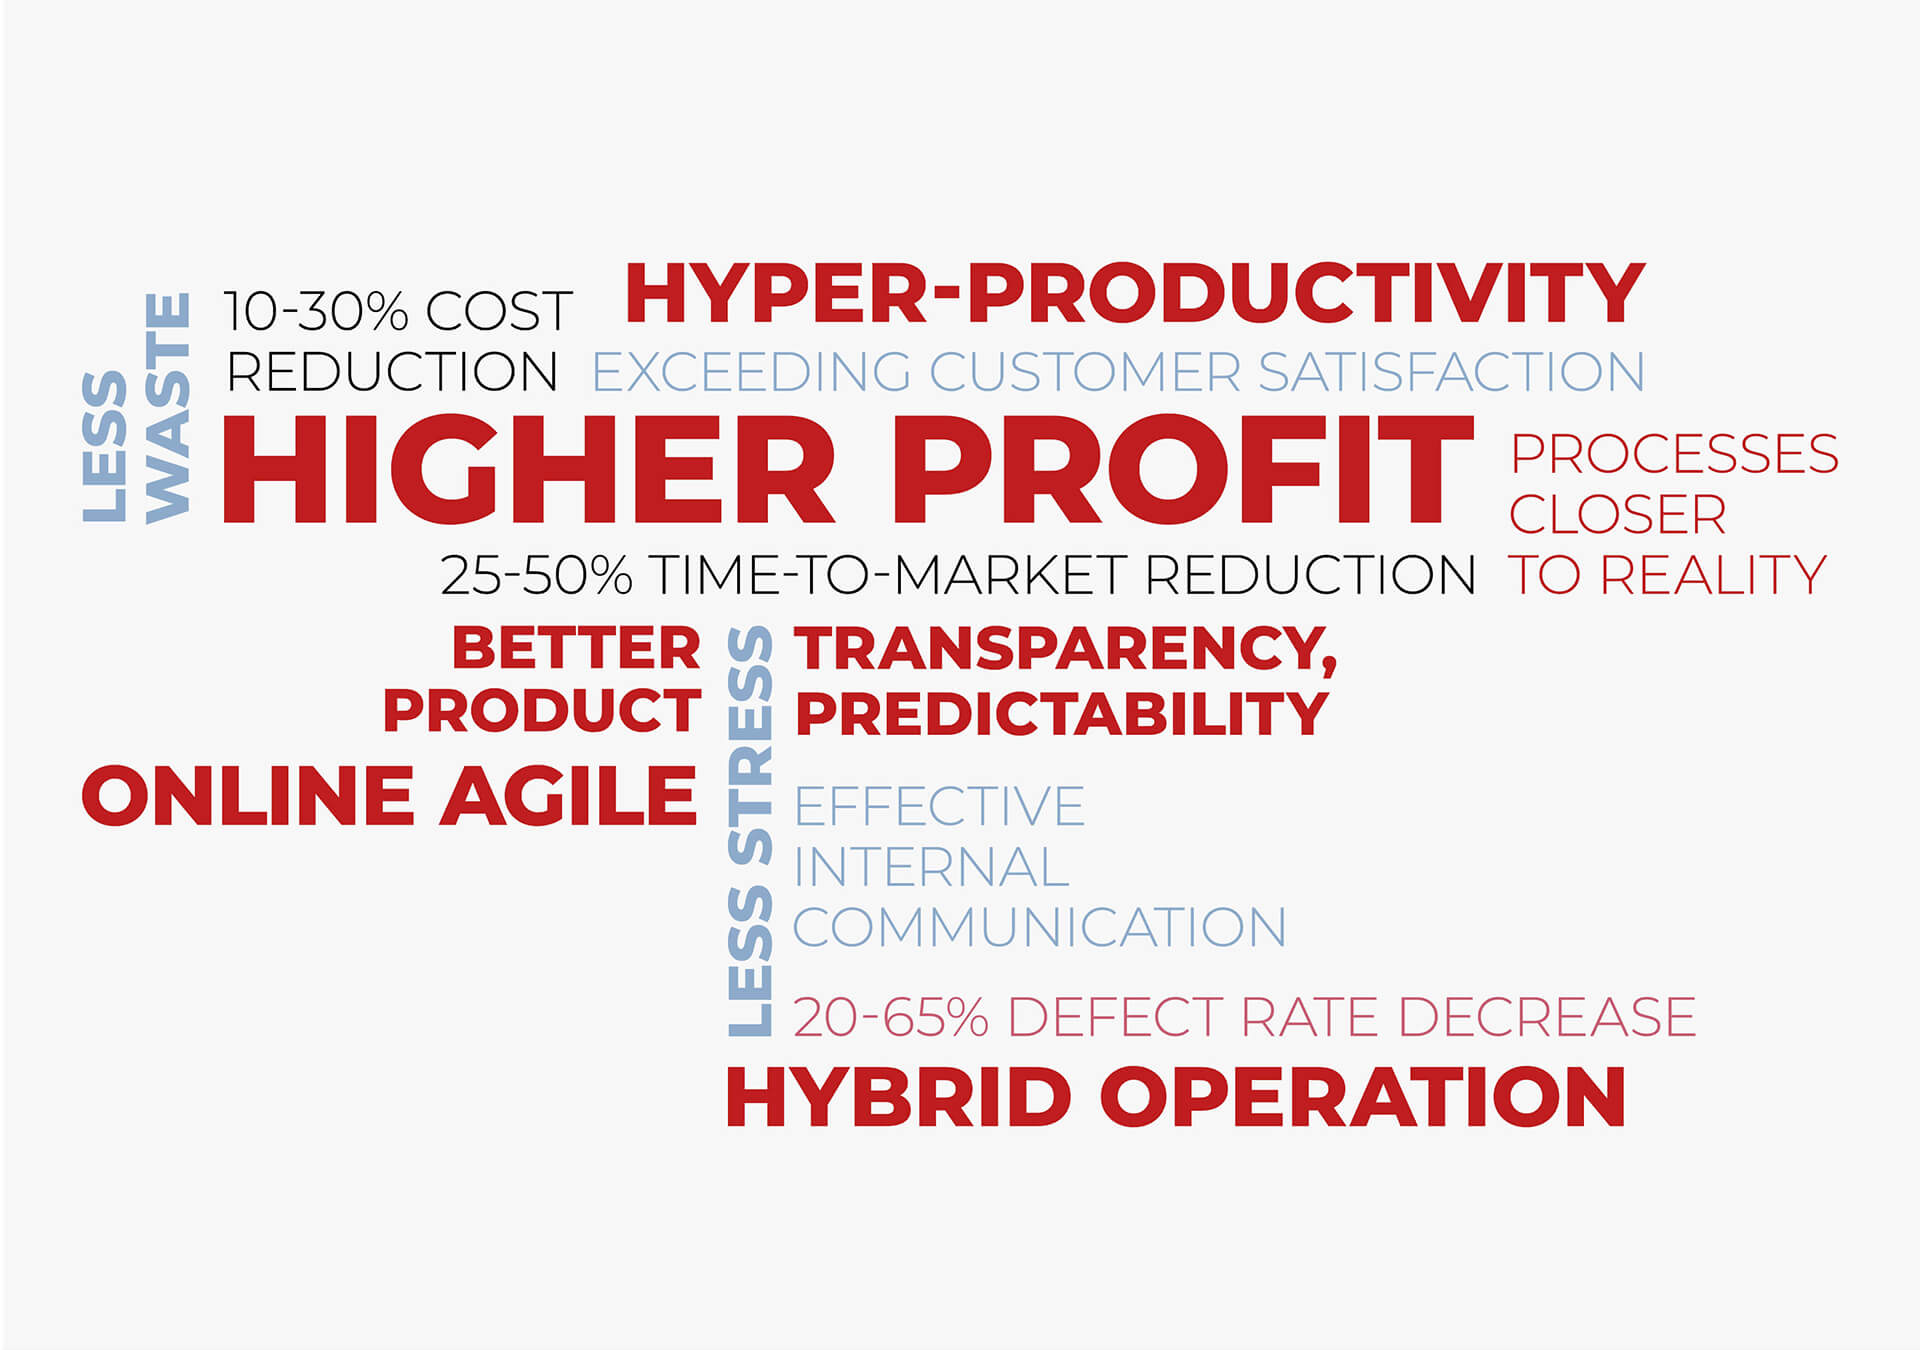 Word cloud containing phrases connected to the Agile methodology: online agile, hybrid operation, cost reduction.